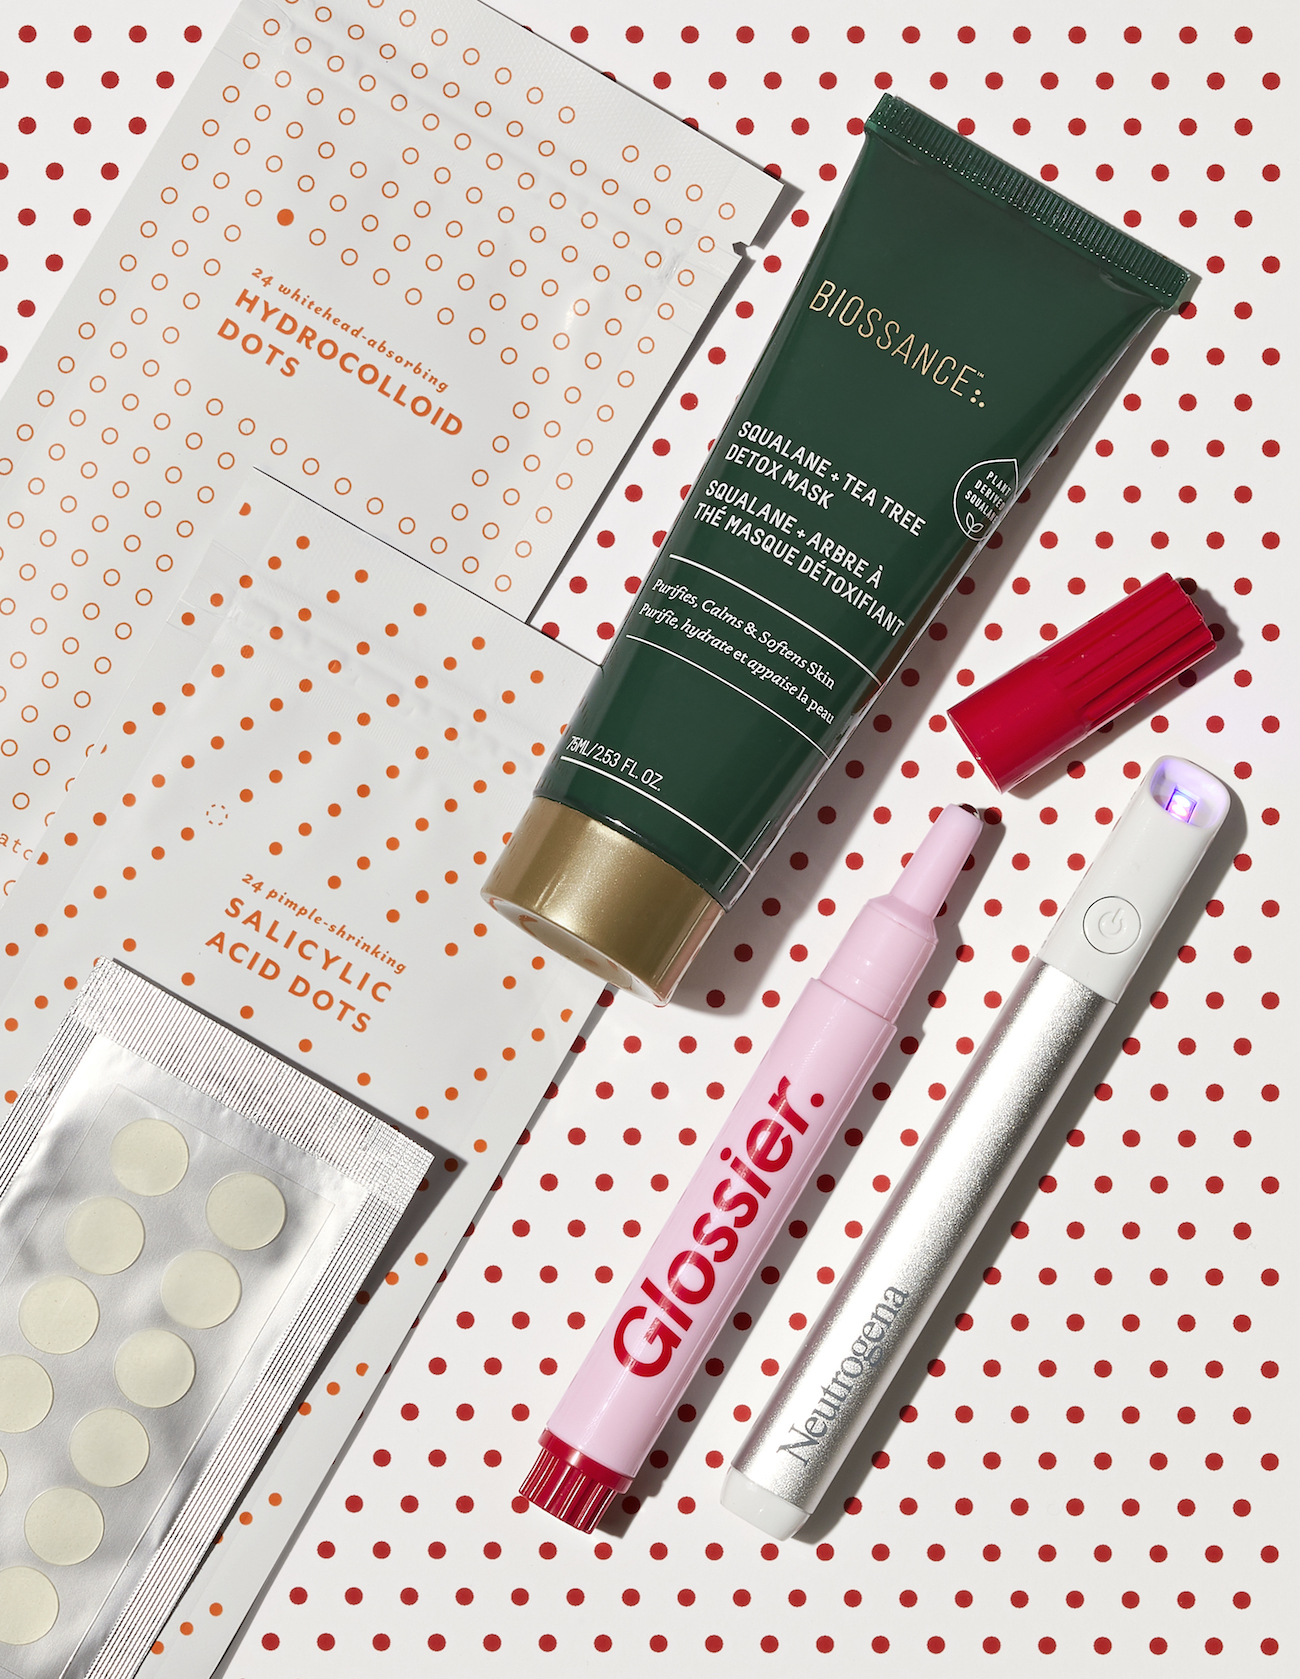 Acne spot treatment products